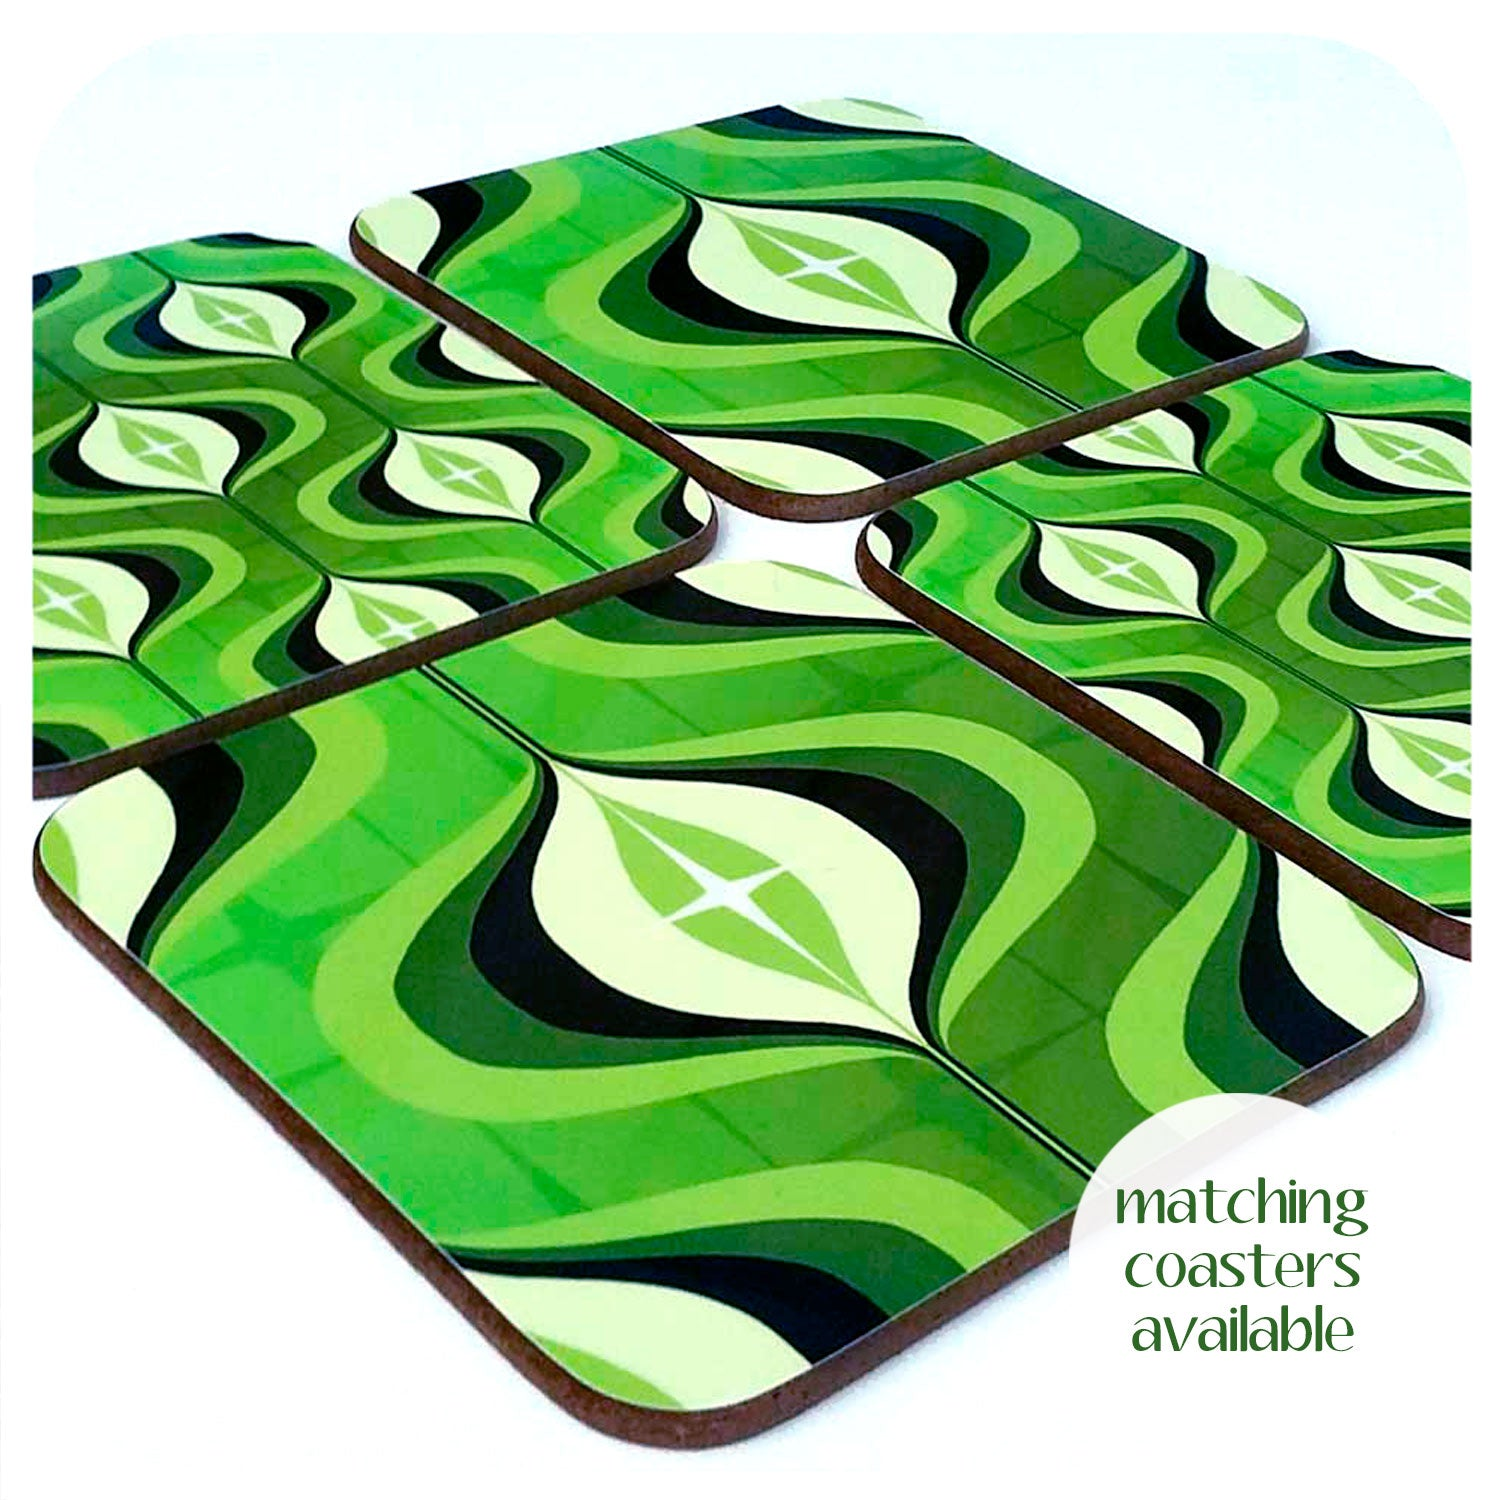 Matching 70s Green Op Art coasters available | The Inkabilly Emporium